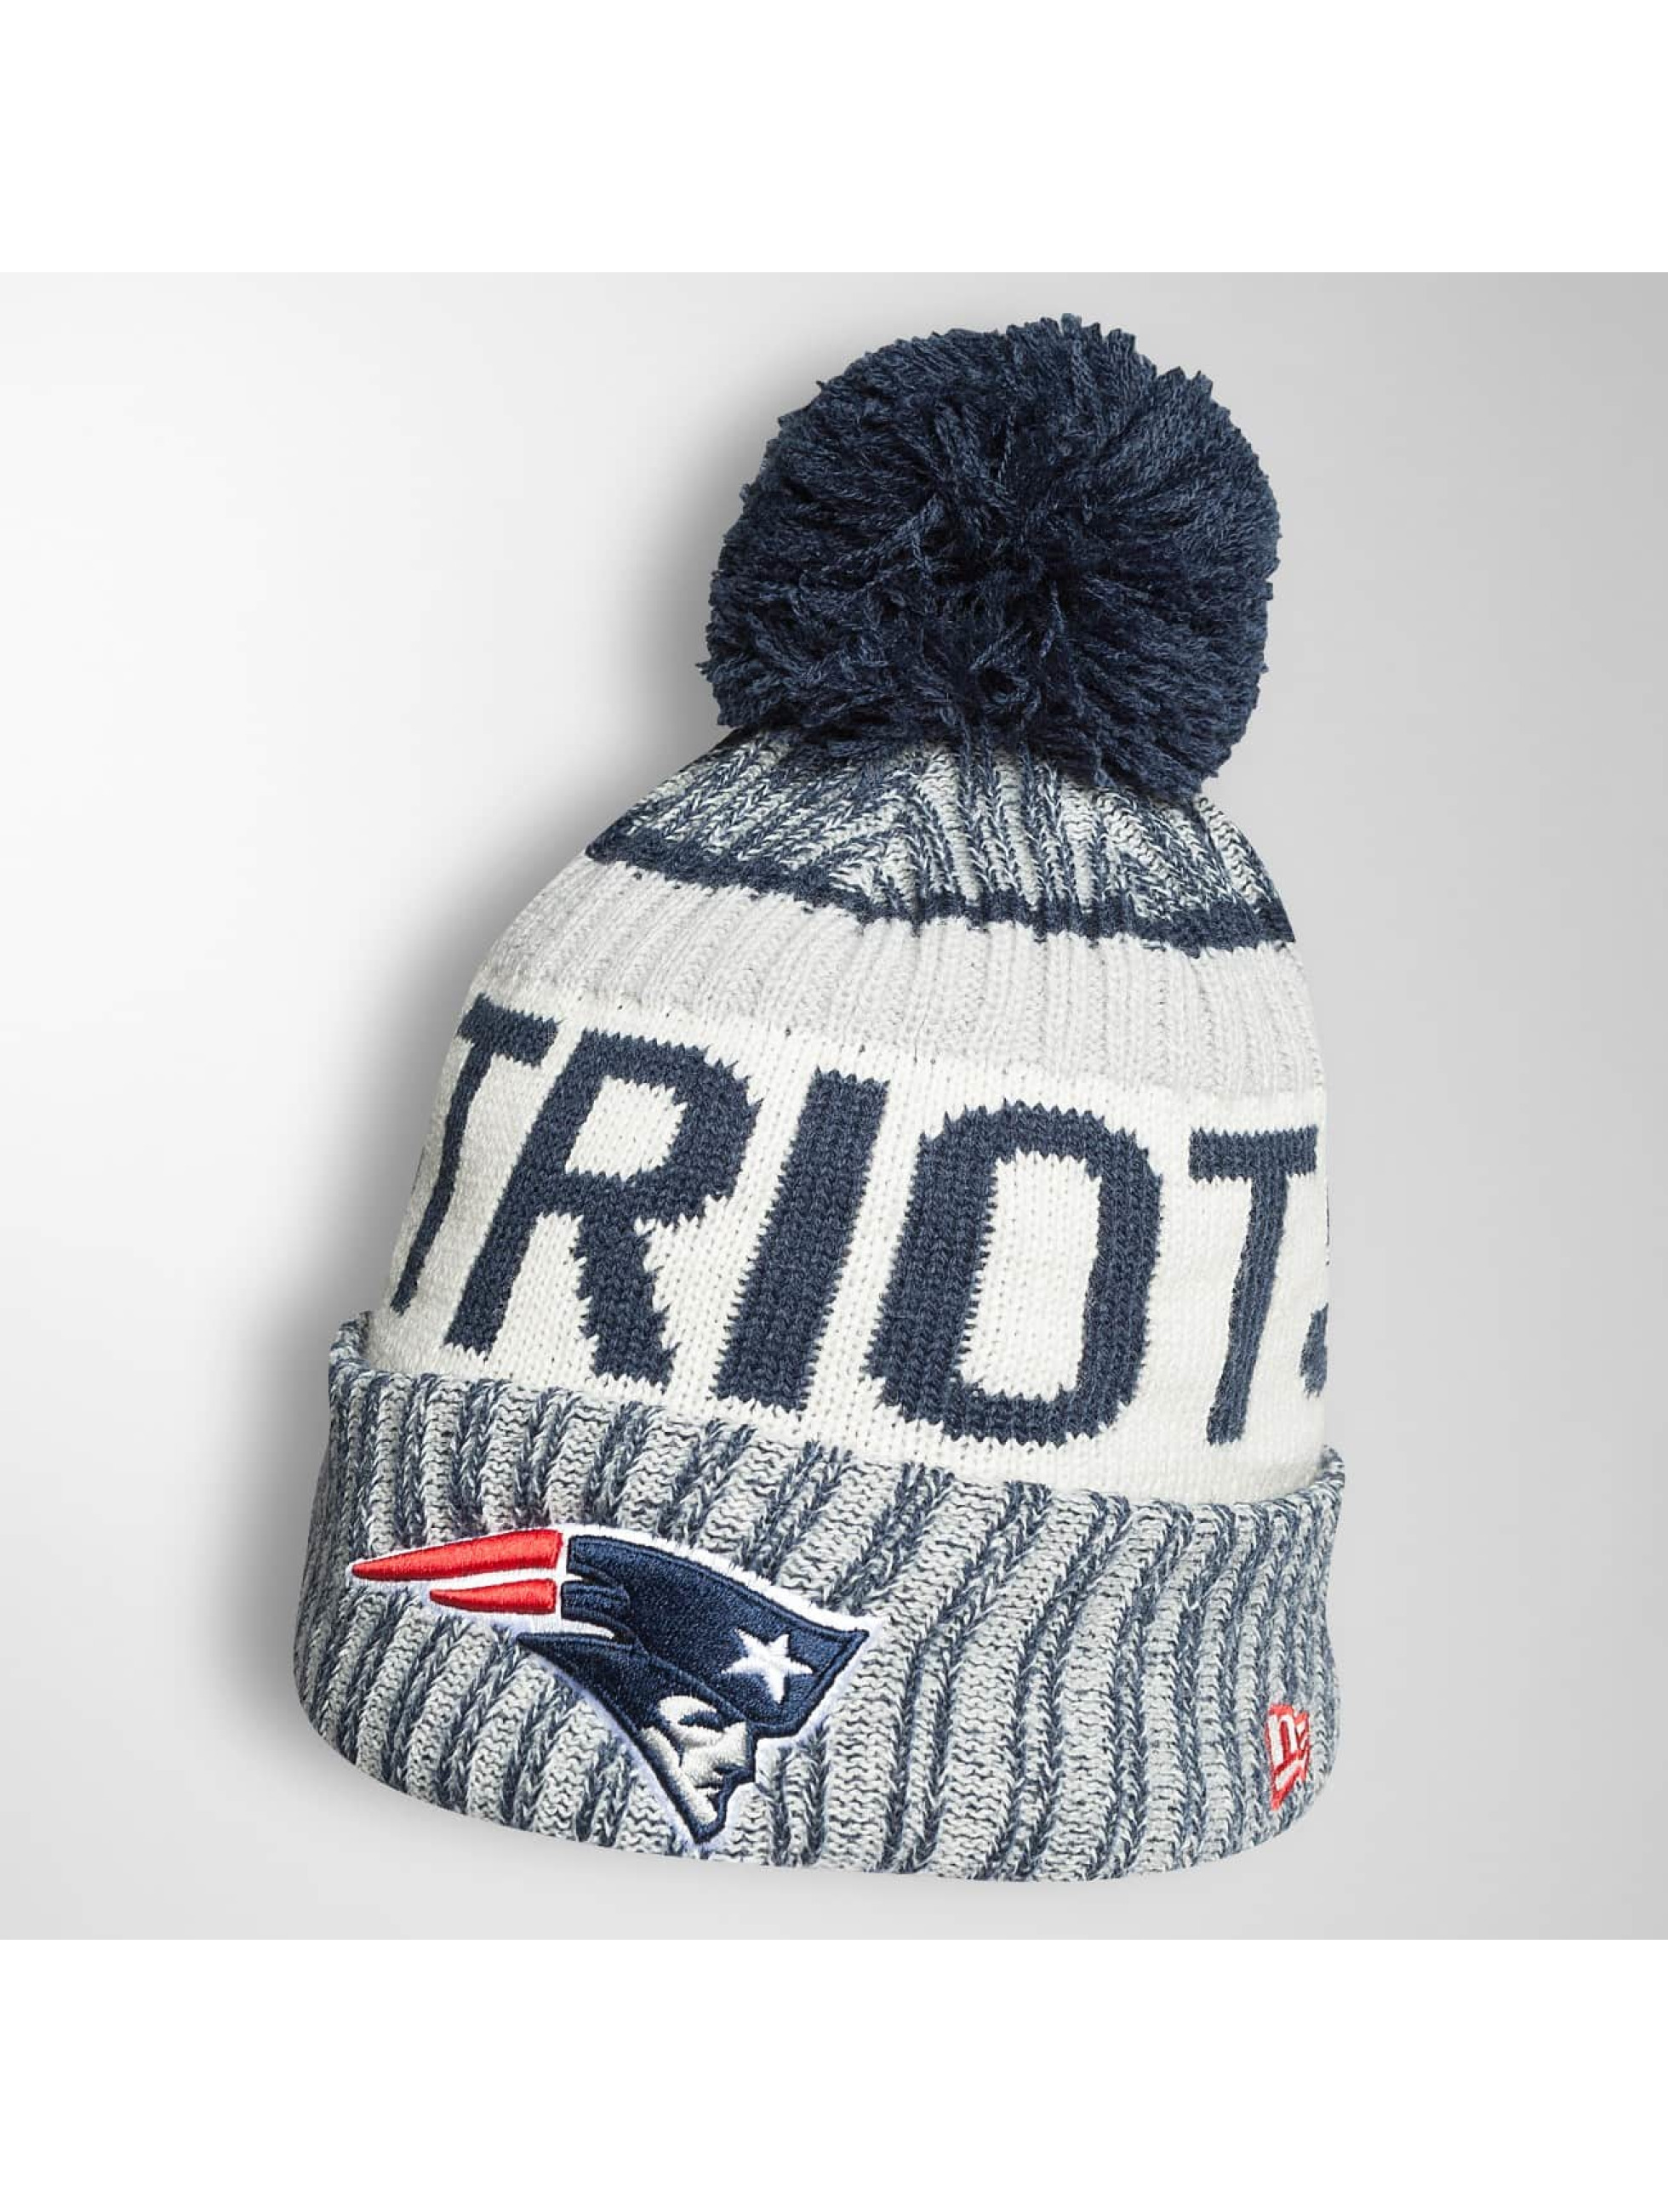 New Era Männer,Frauen Wintermütze On Fiel NFL Sport New England Patriots in blau